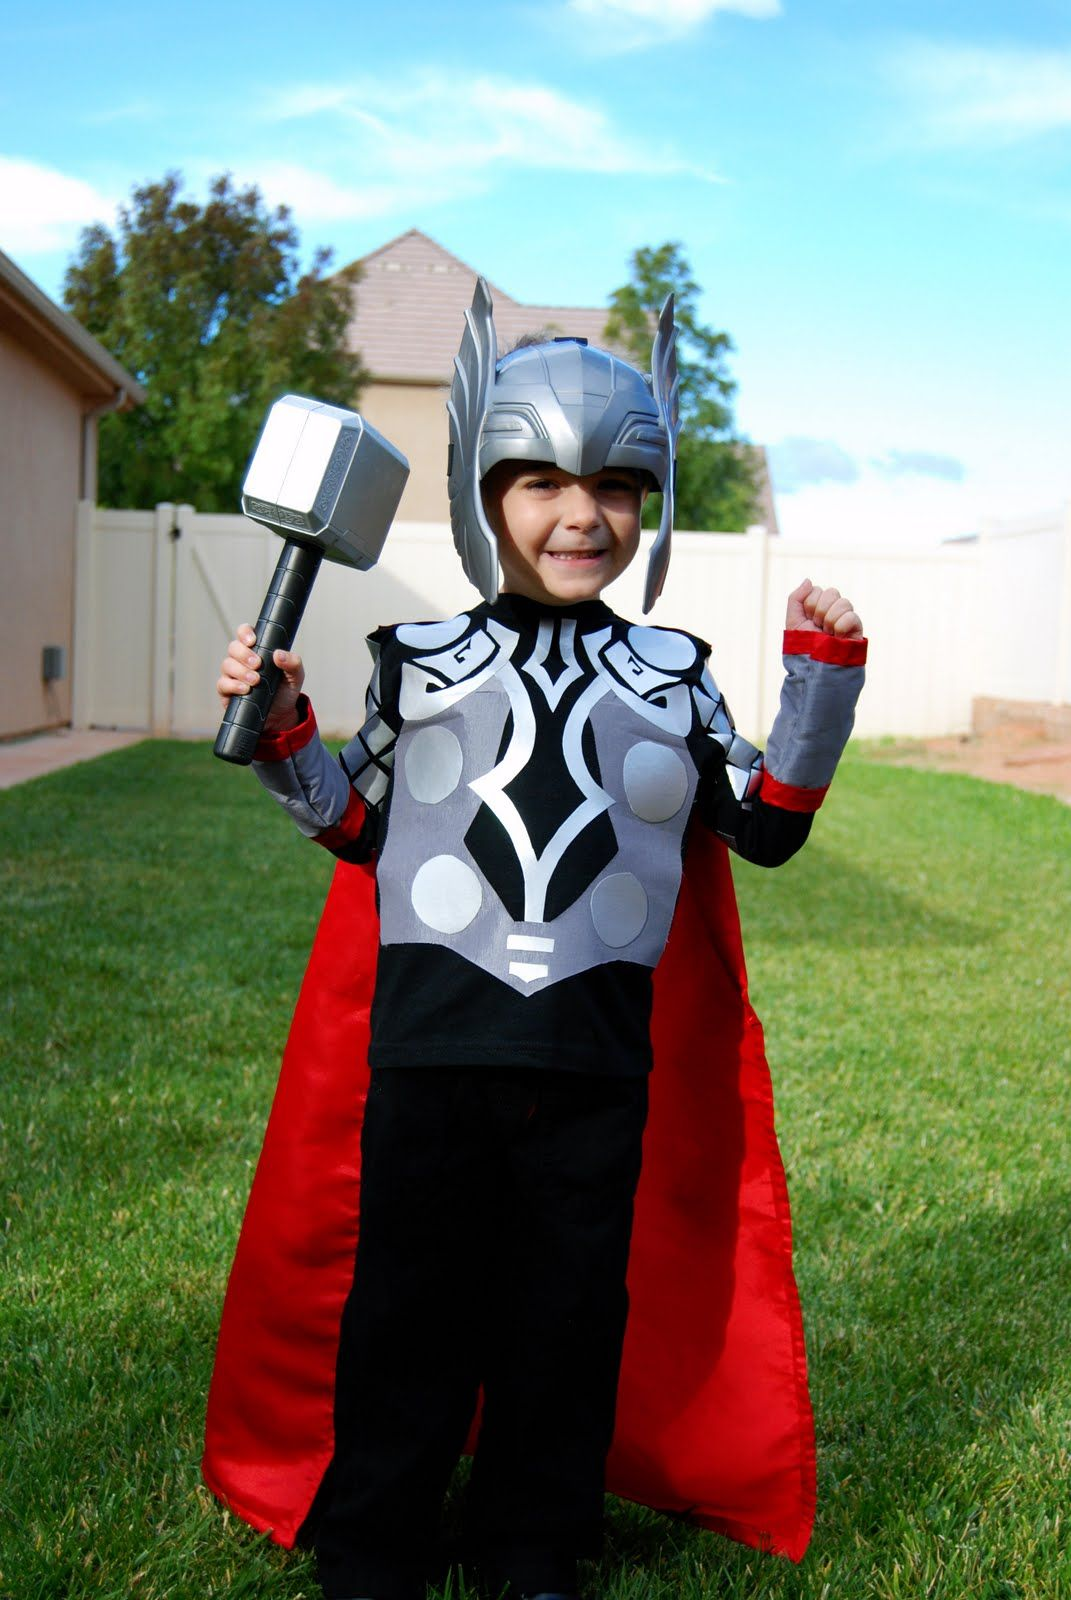 The Mighty Thor Diy Costume For Kids Easy To Make Diy